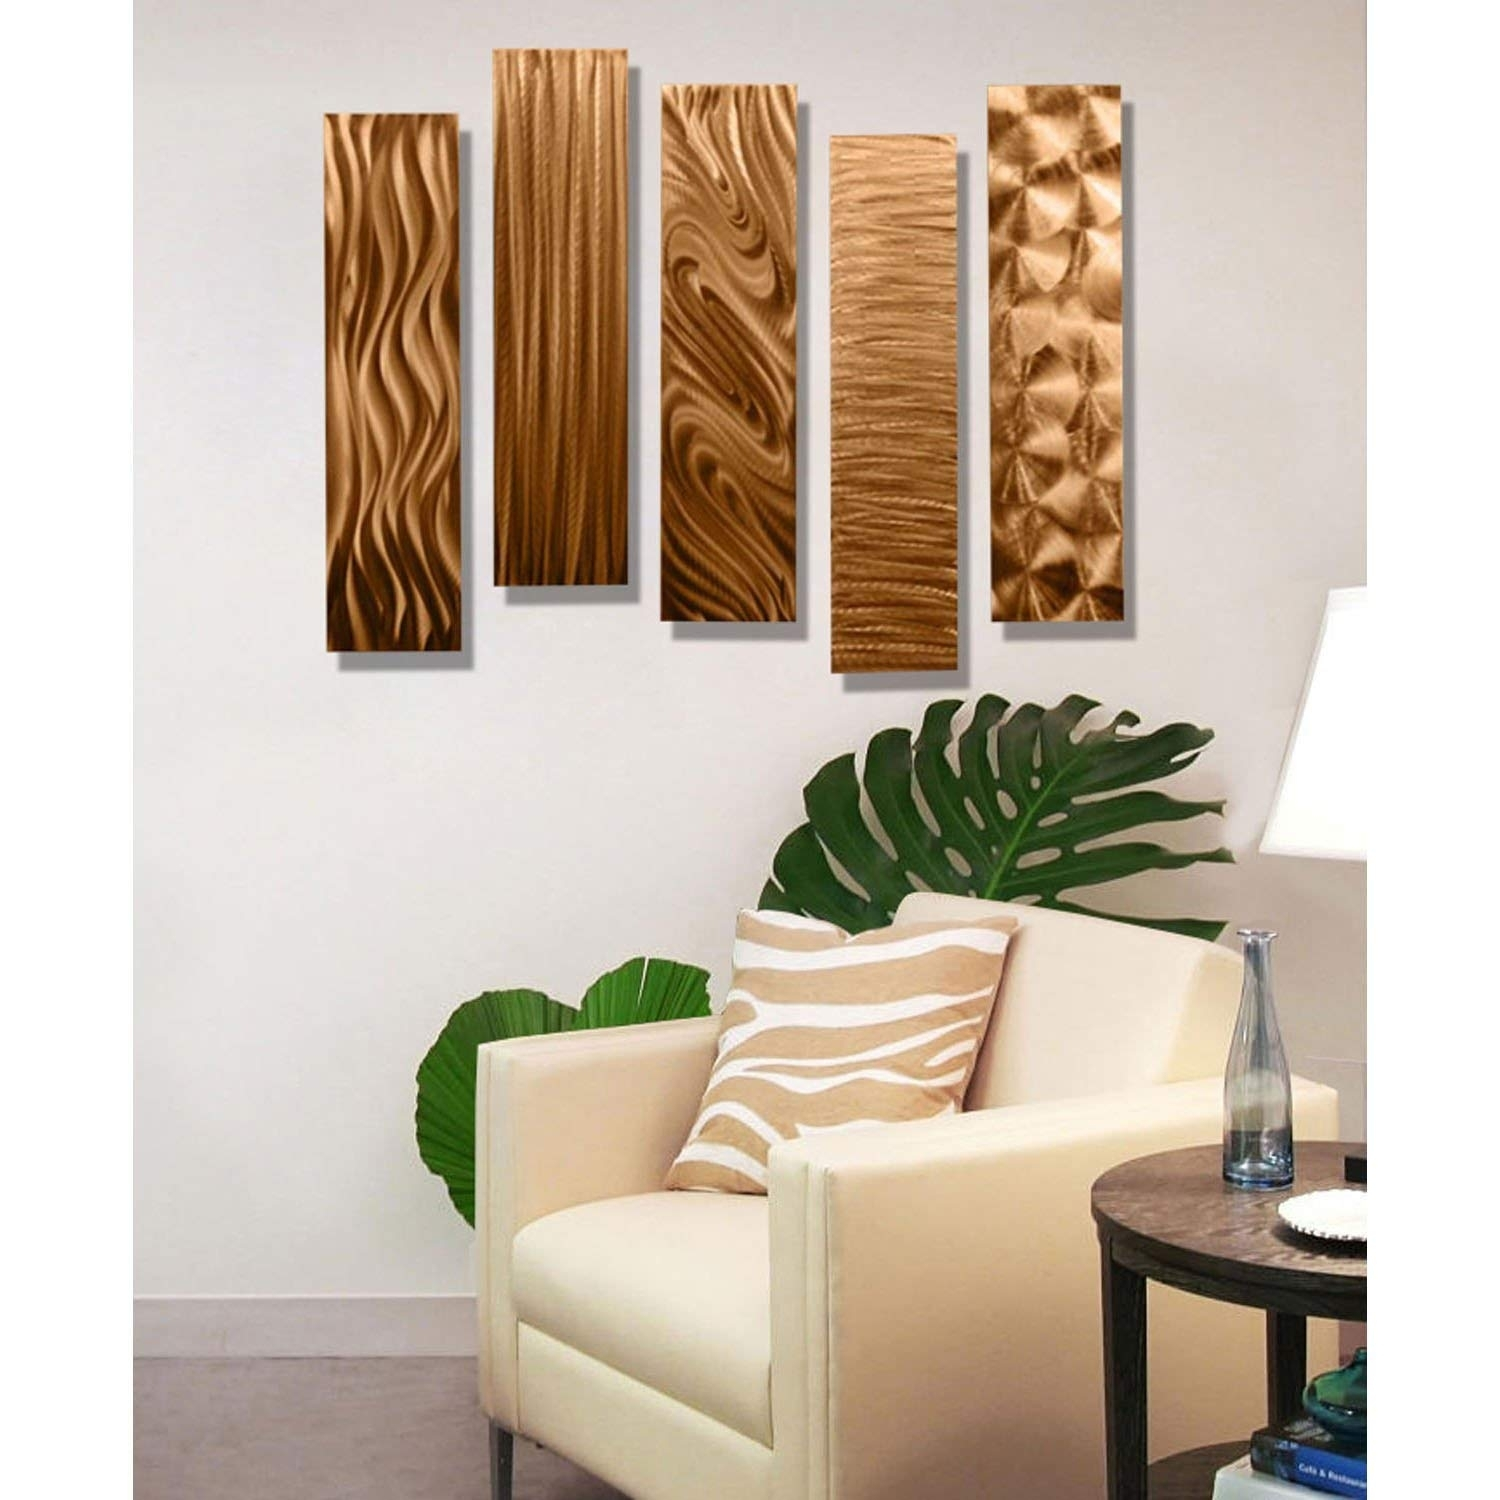 Amazon: Statements2000 Copper Metal Wall Art Decor, 5 Piece Set inside Copper Wall Art (Image 1 of 20)